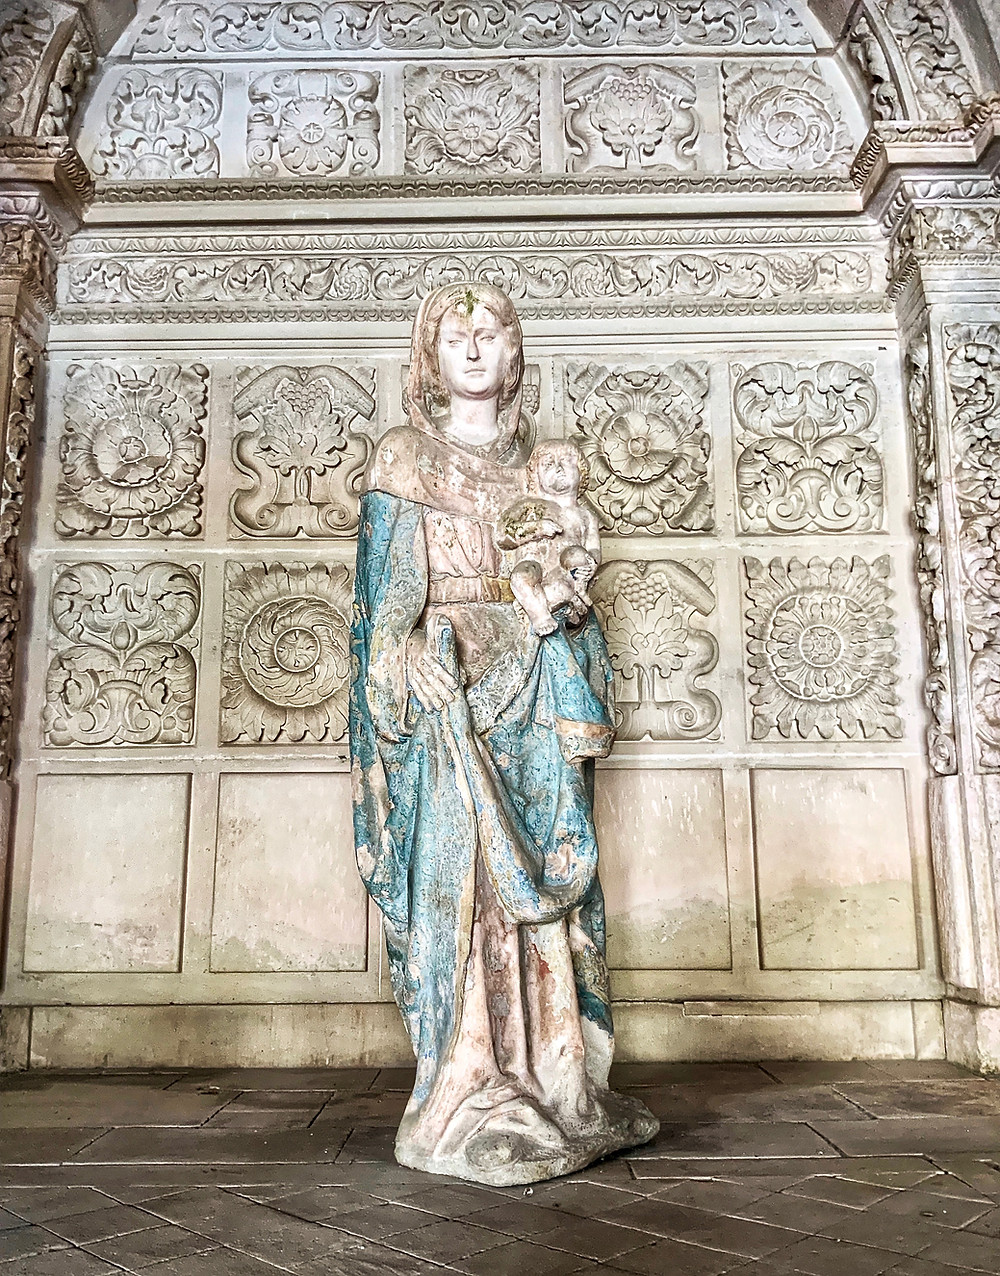 The statue of the Virgin of the Cloister in the Reading Cloister. According to Cistercian tradition, an image of the Virgin Mary should always be present when the bible was read.